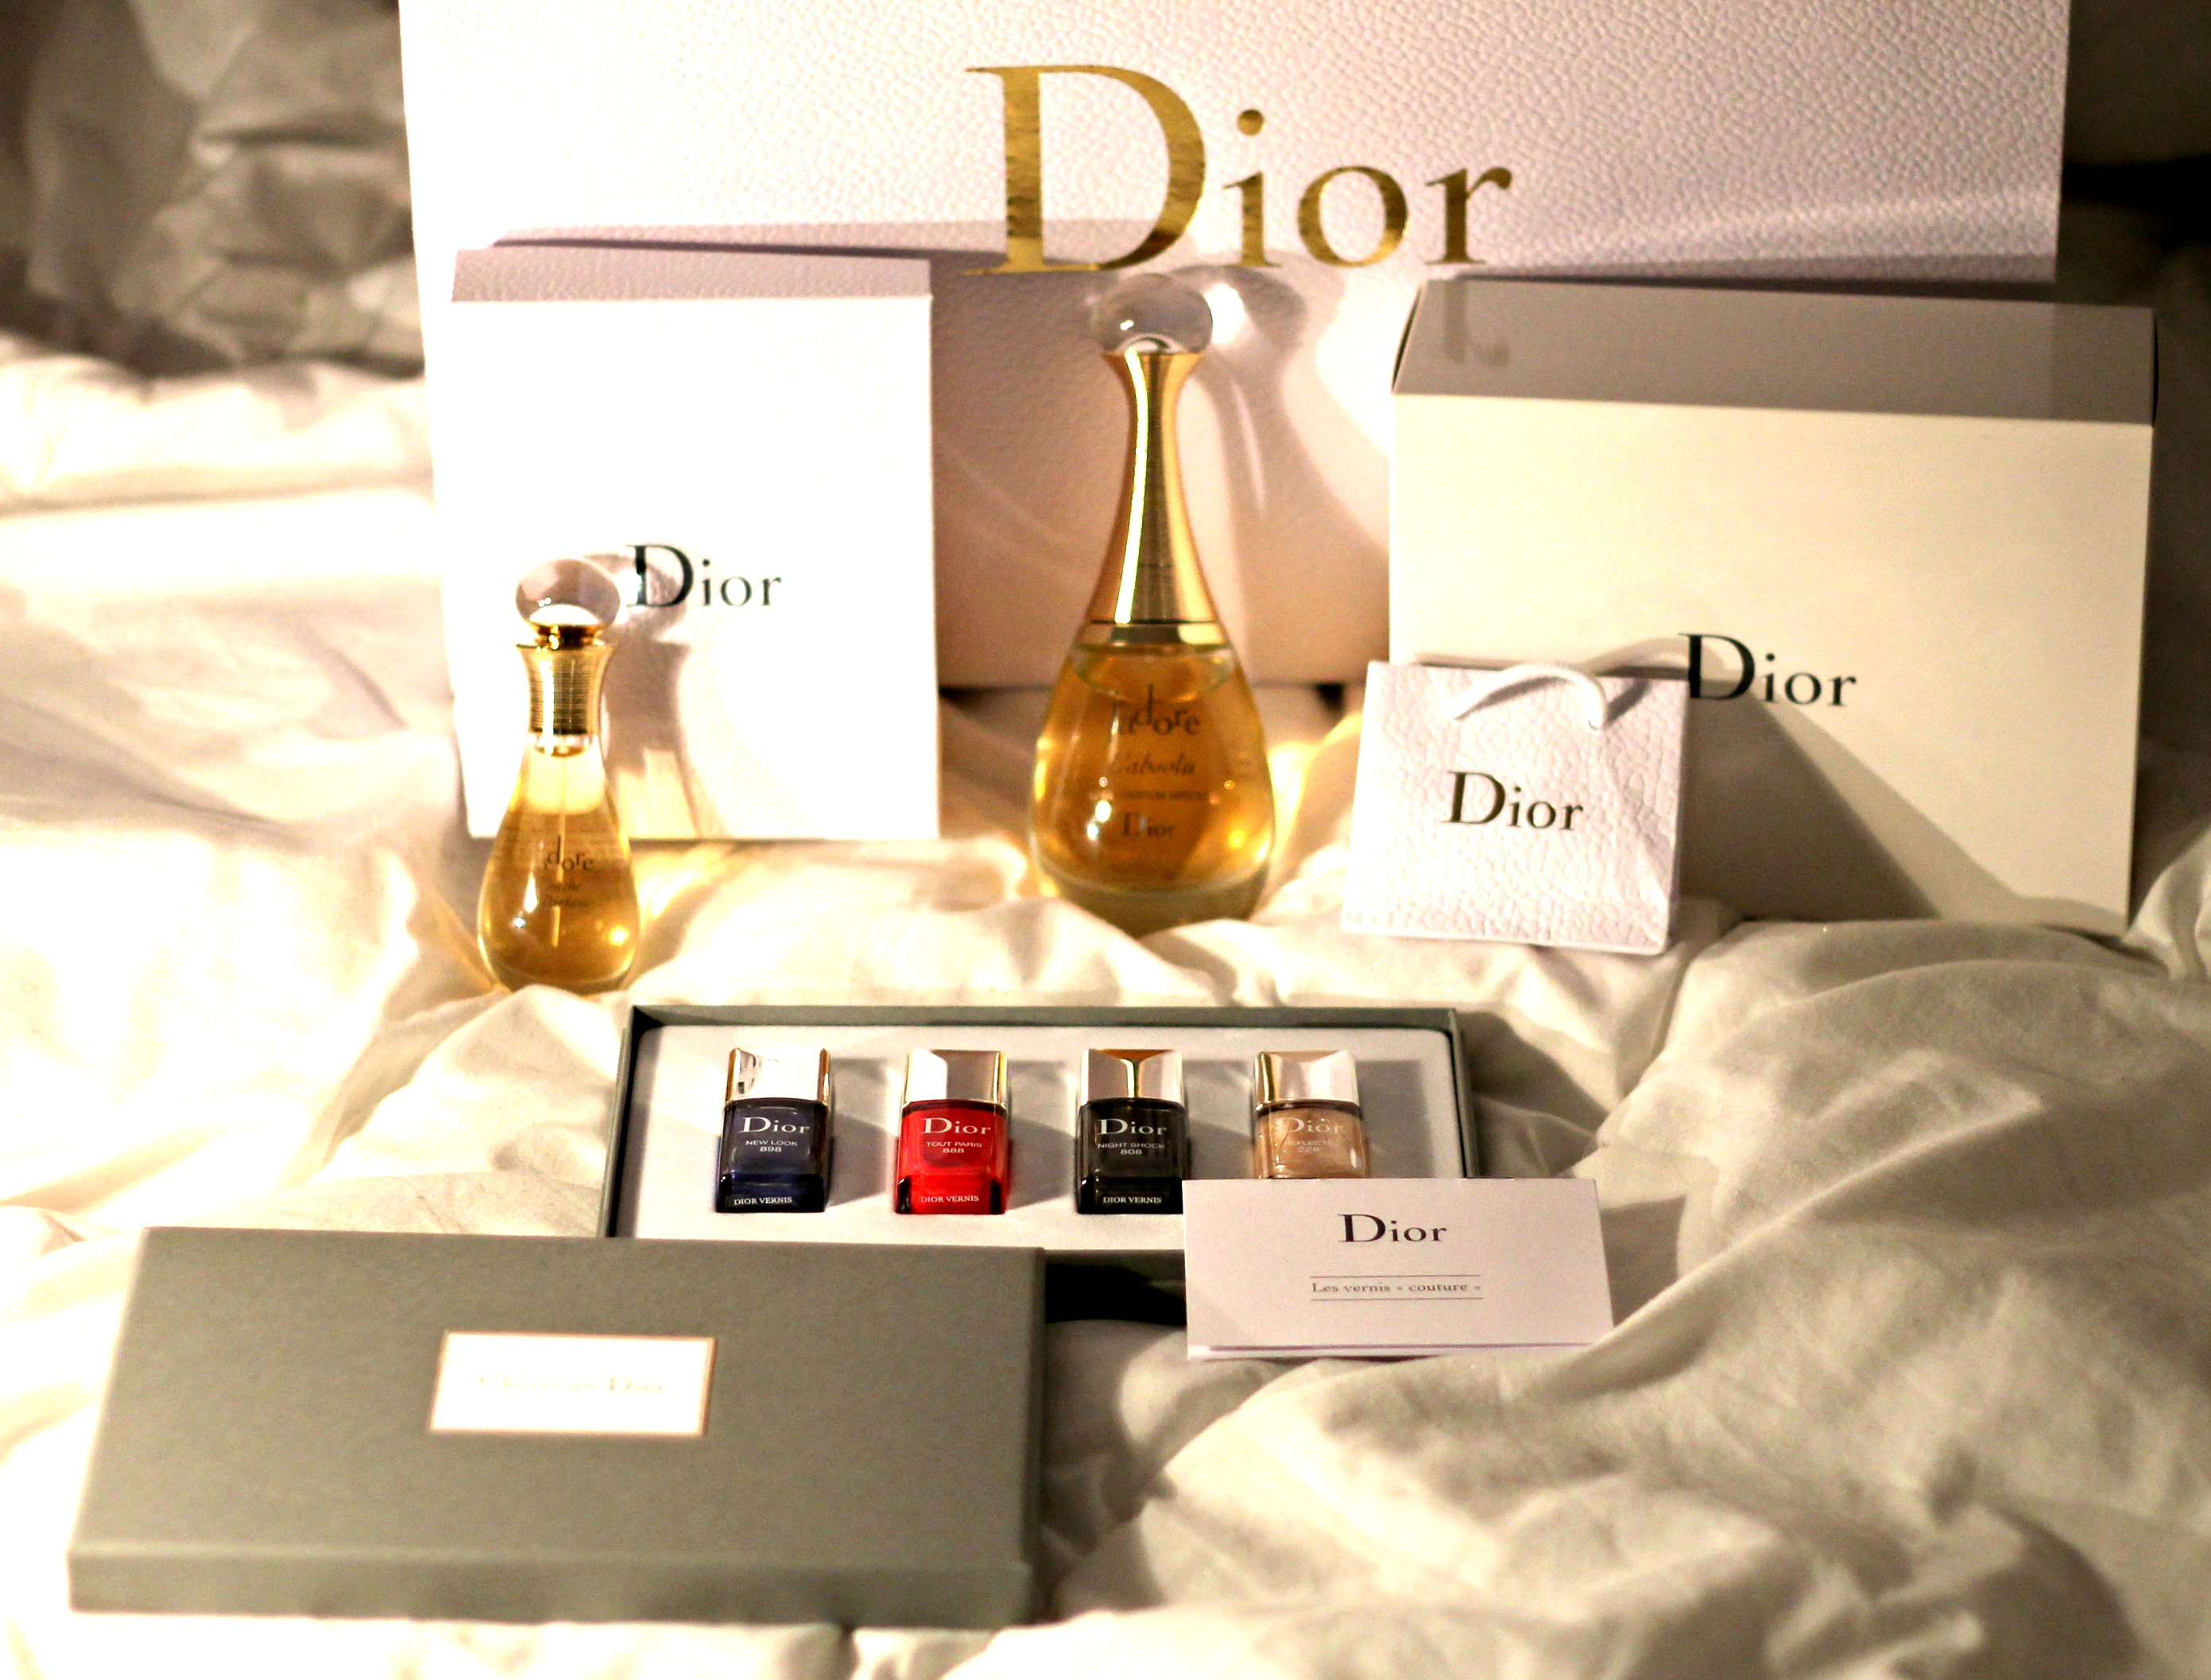 dior perfume touche de parfum, theladycracy.it, elisa bellino, dior beauty, fashion blog italiani migliori